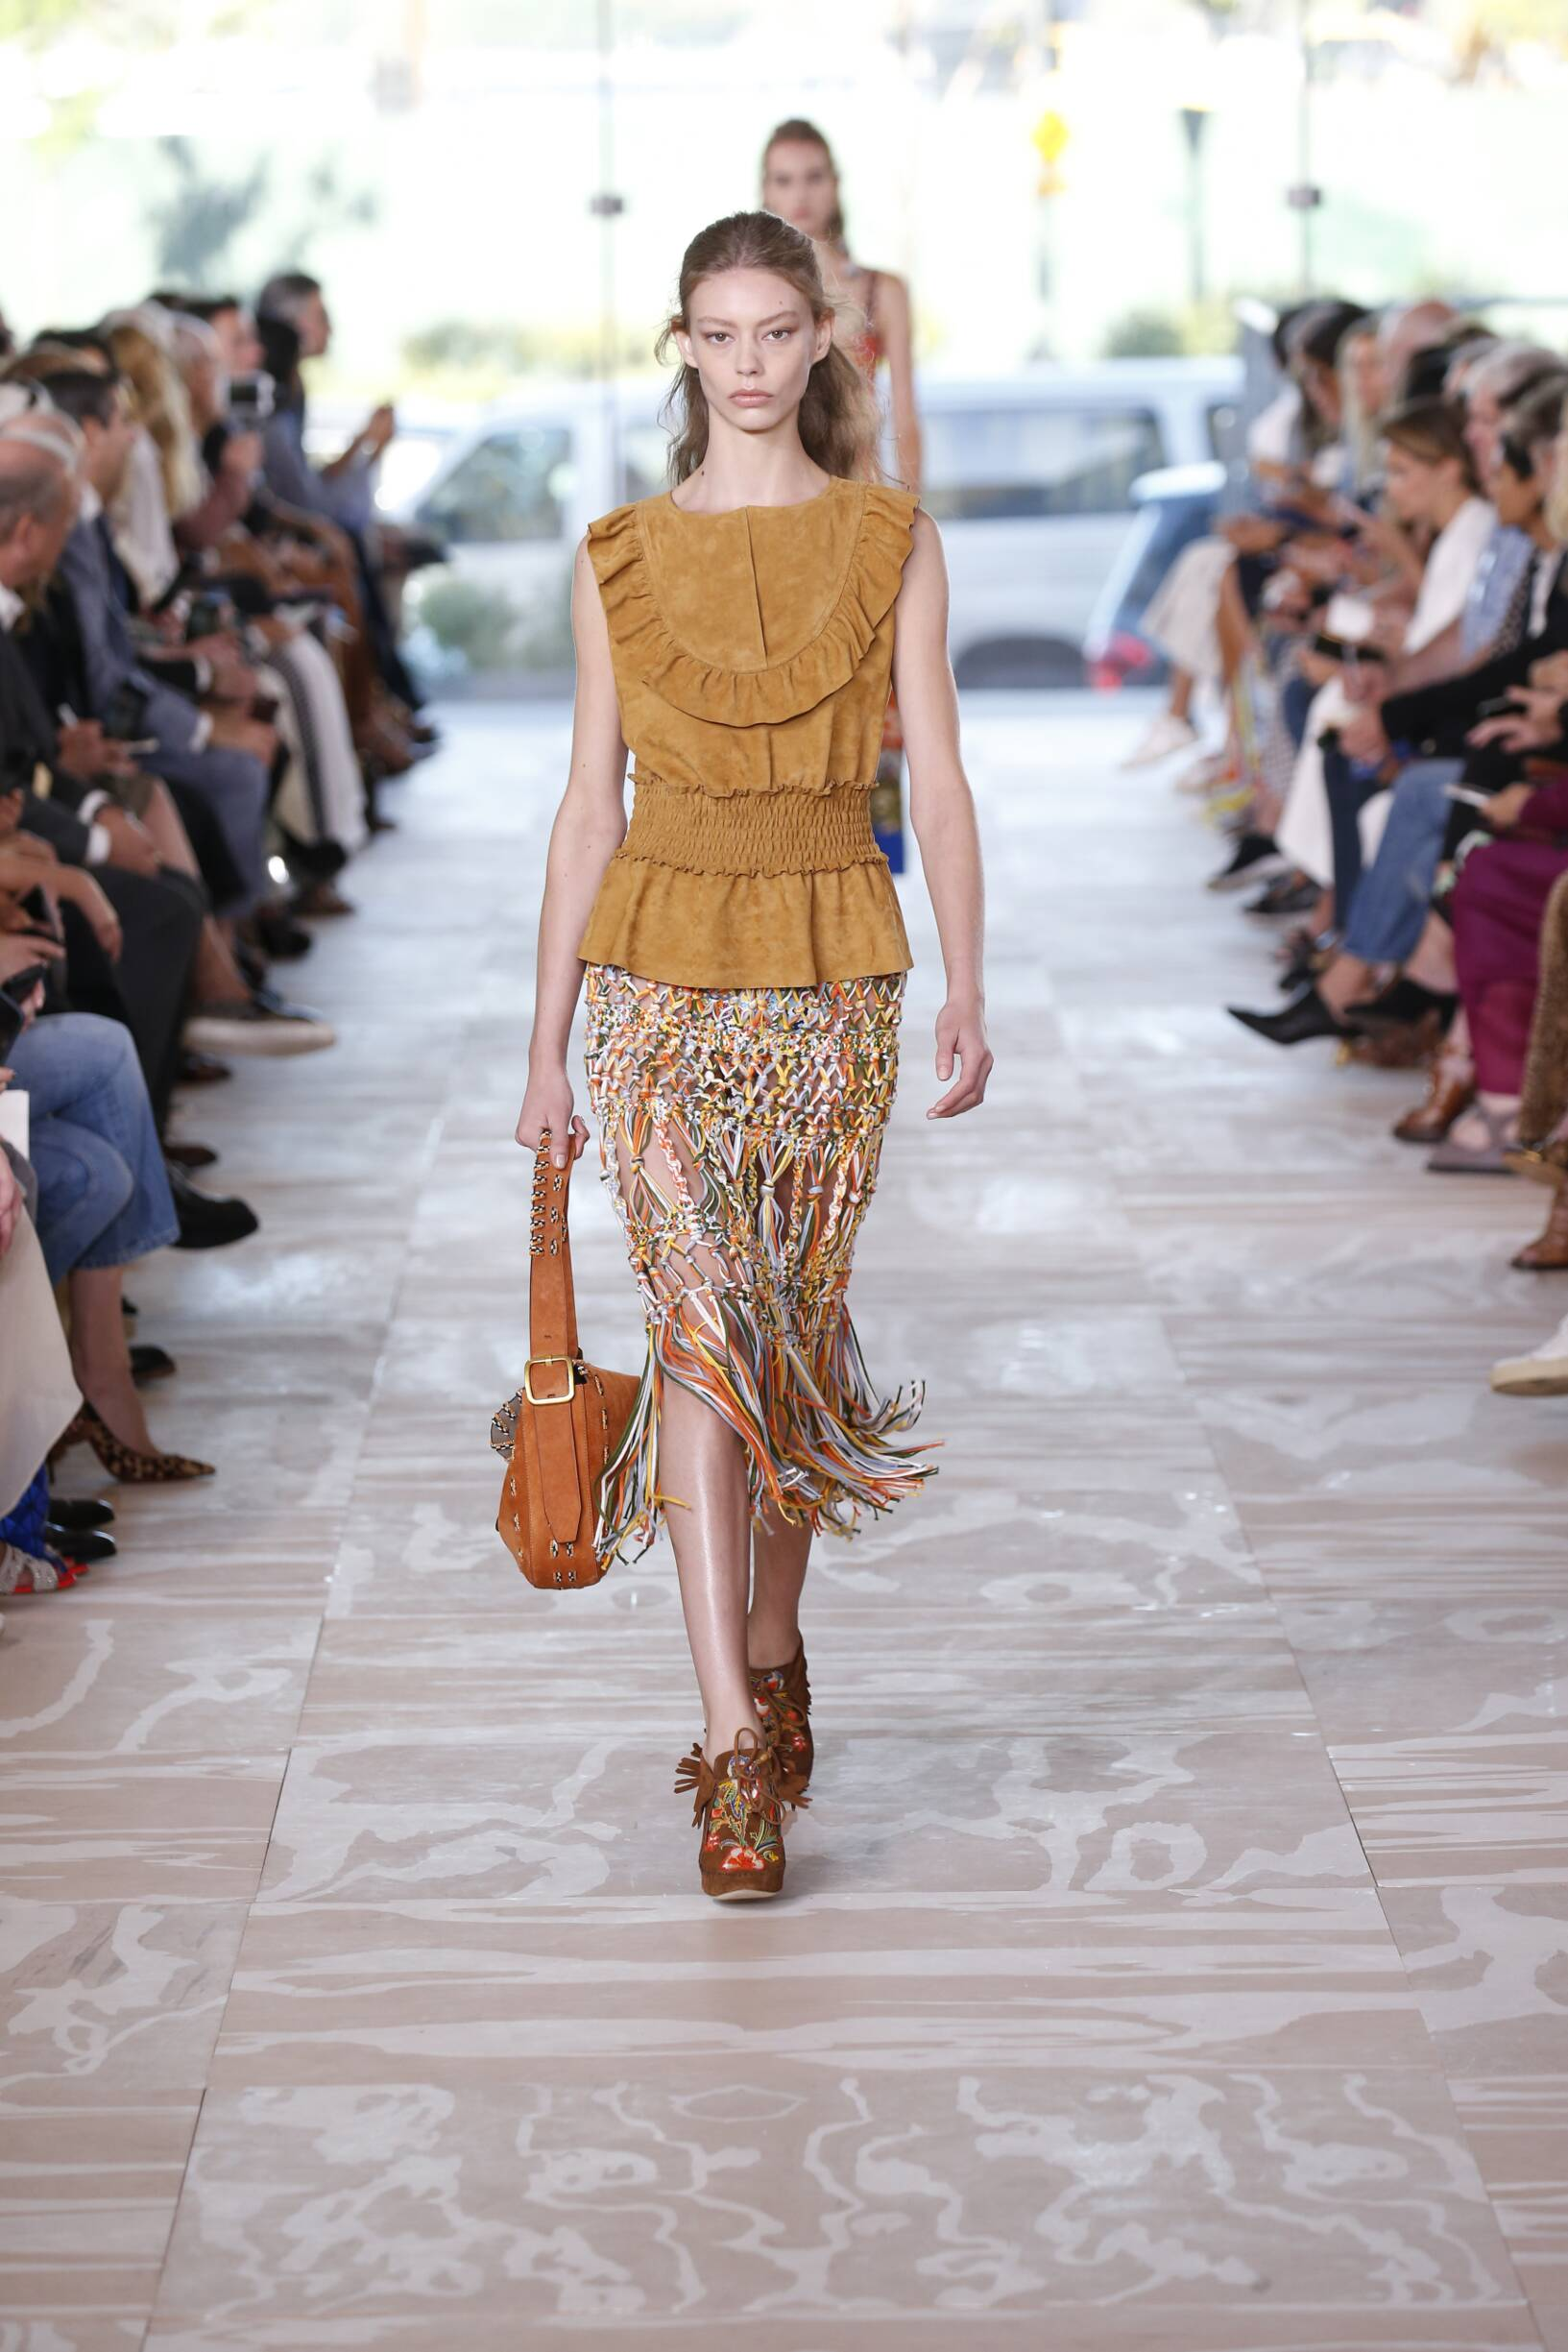 Tory Burch Summer 2017 Catwalk